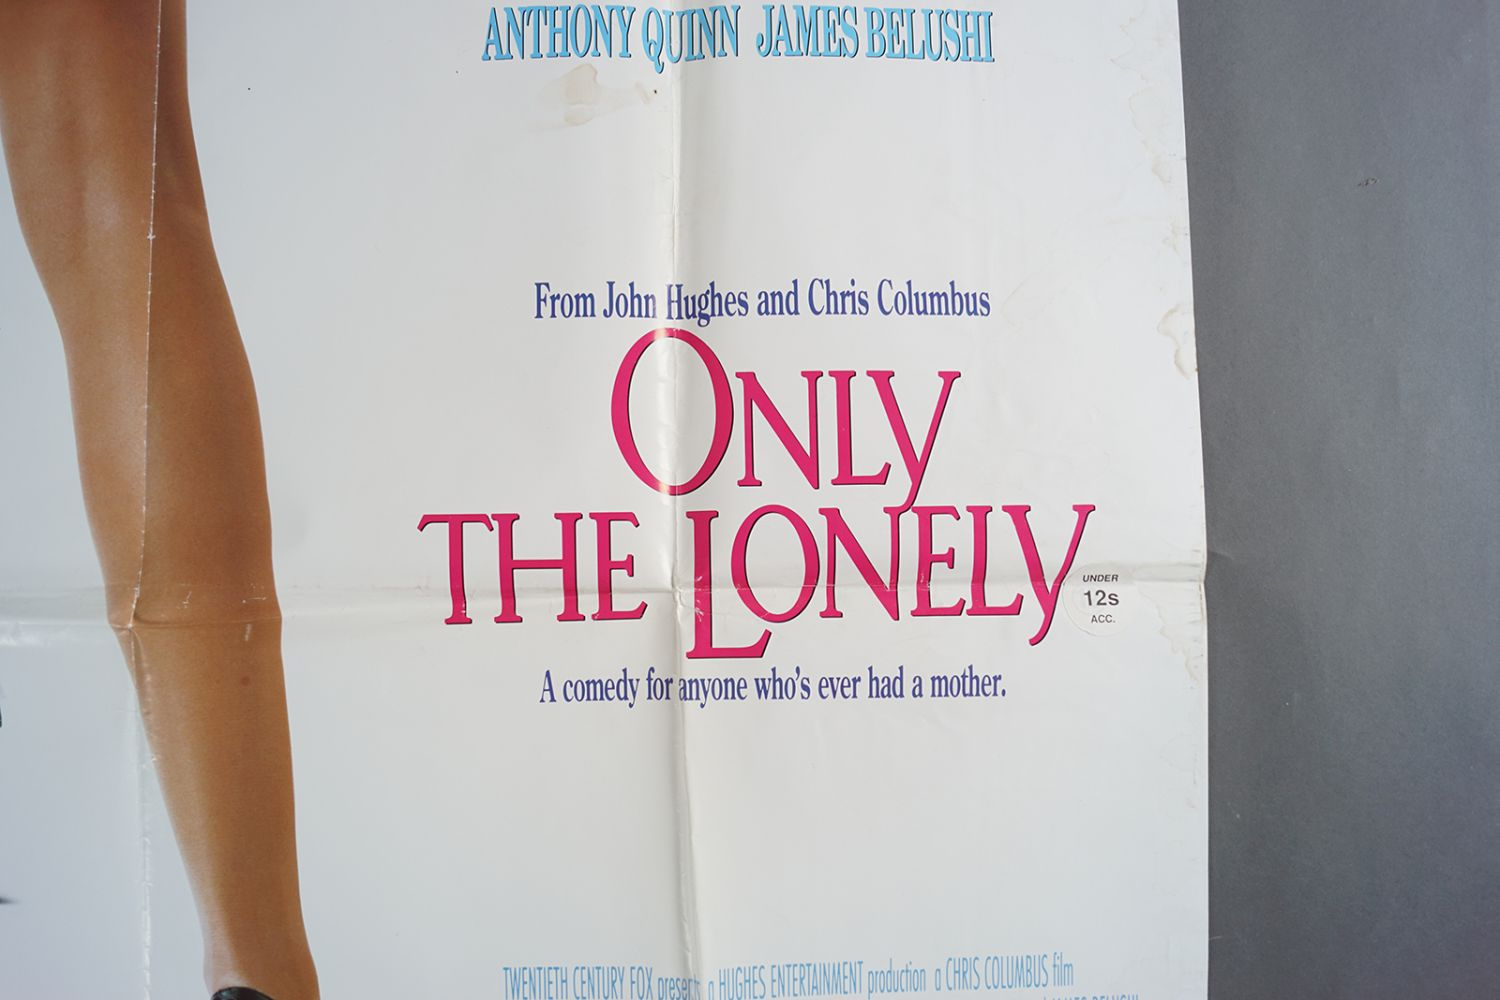 ONLY THE LONELY - Image 3 of 3